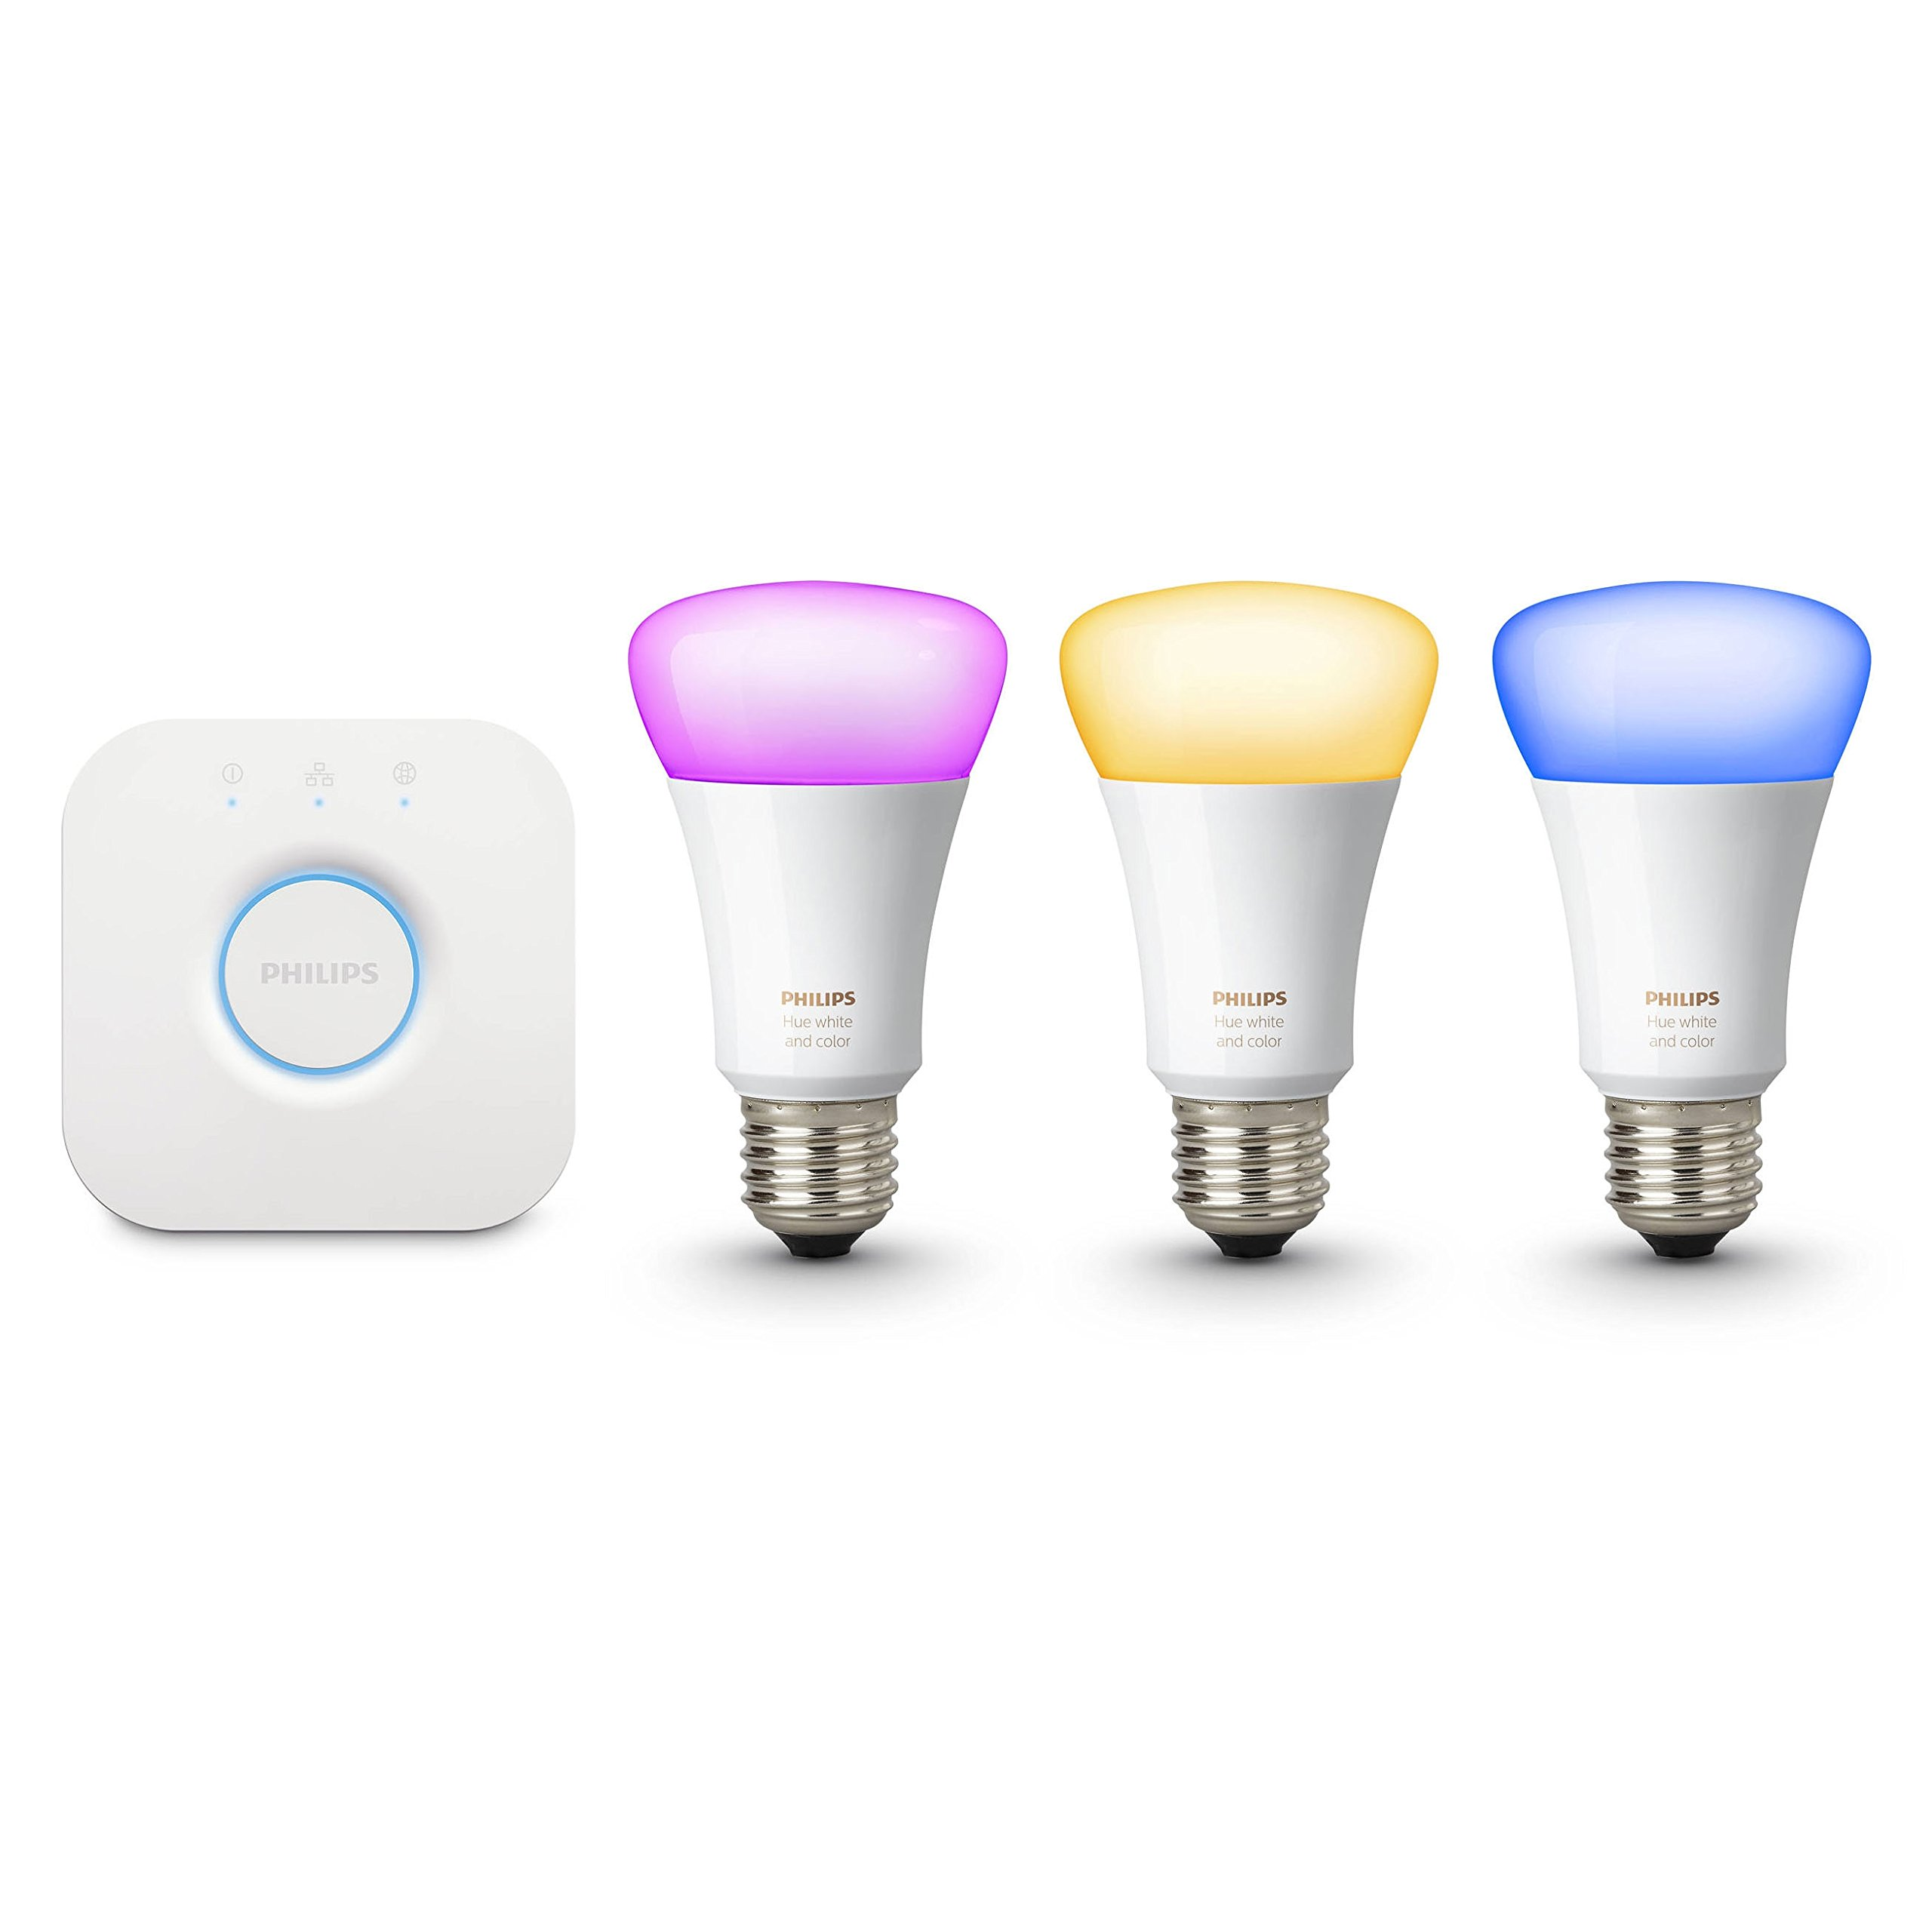 Philips Hue 464479 60W Equivalent White and Color Ambiance A19 Starter Kit, 3rd Generation, Works with Amazon Alexa (Certified Refurbished)